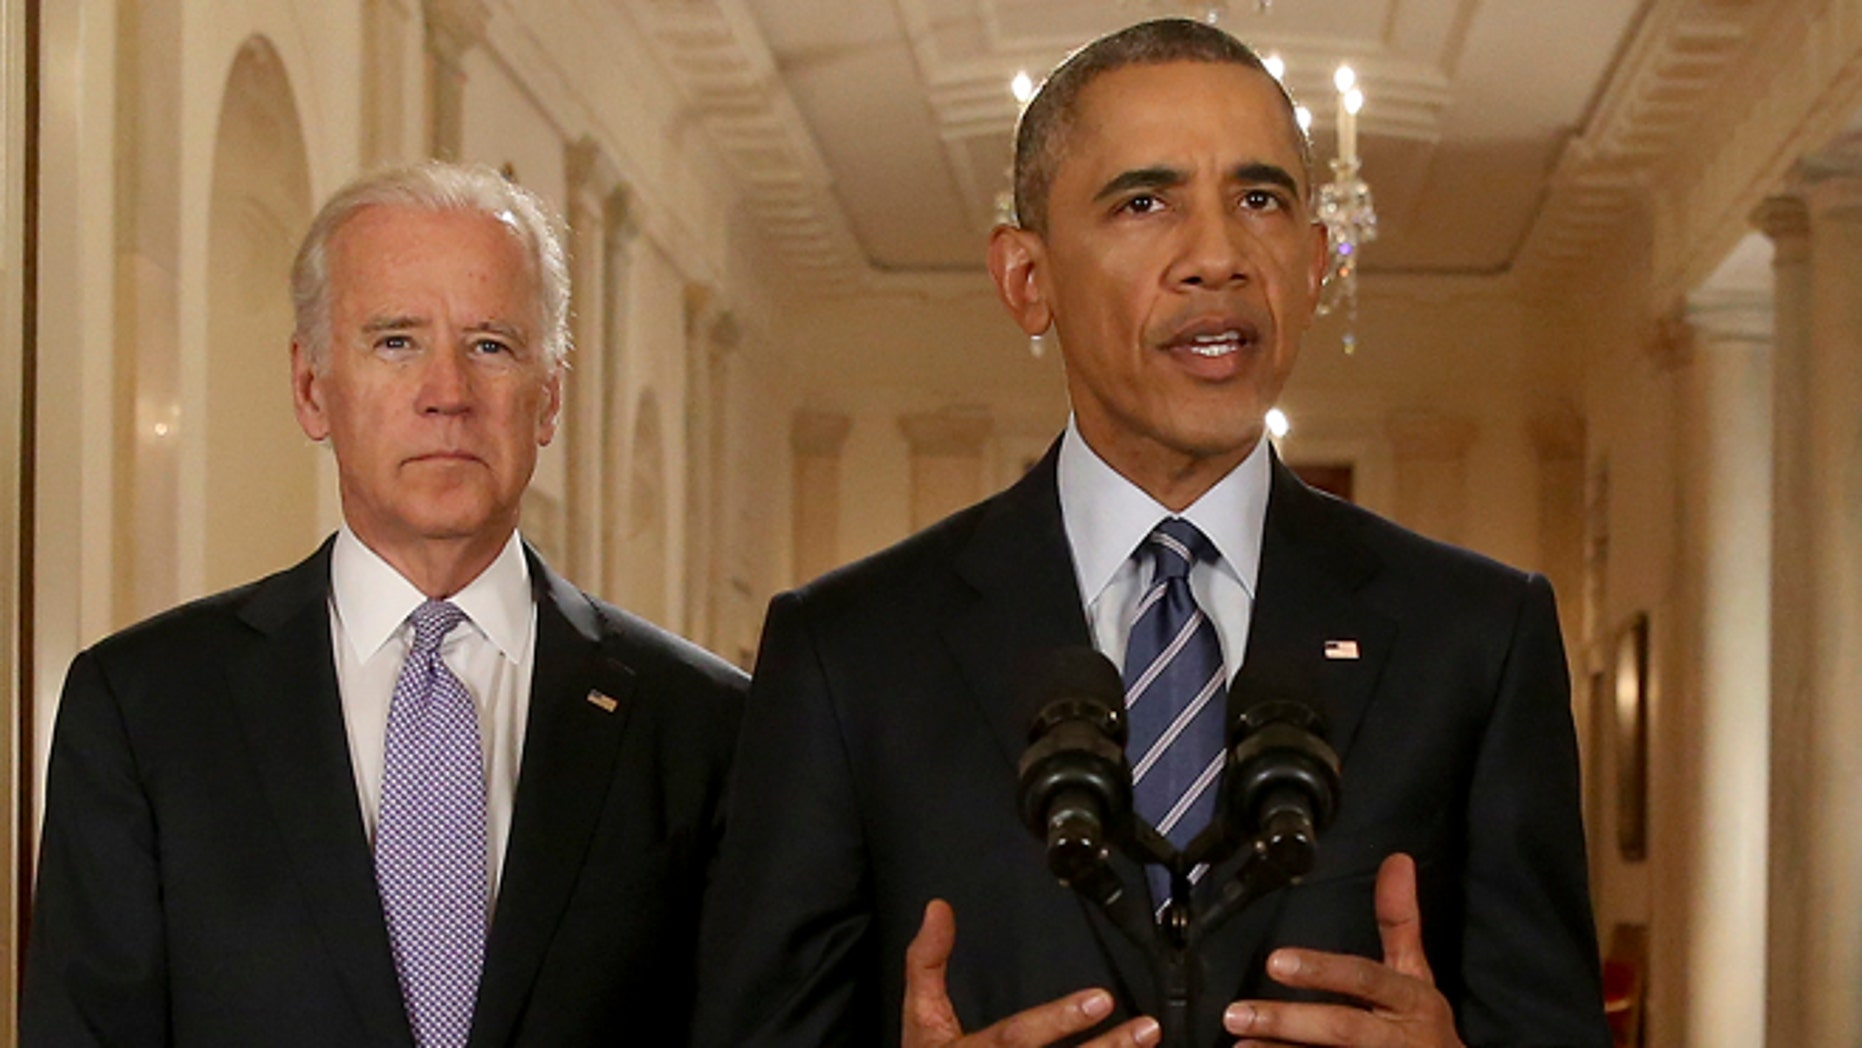 President Obama, standing with Vice President Biden, delivers remarks in the White House on July 14, 2015.